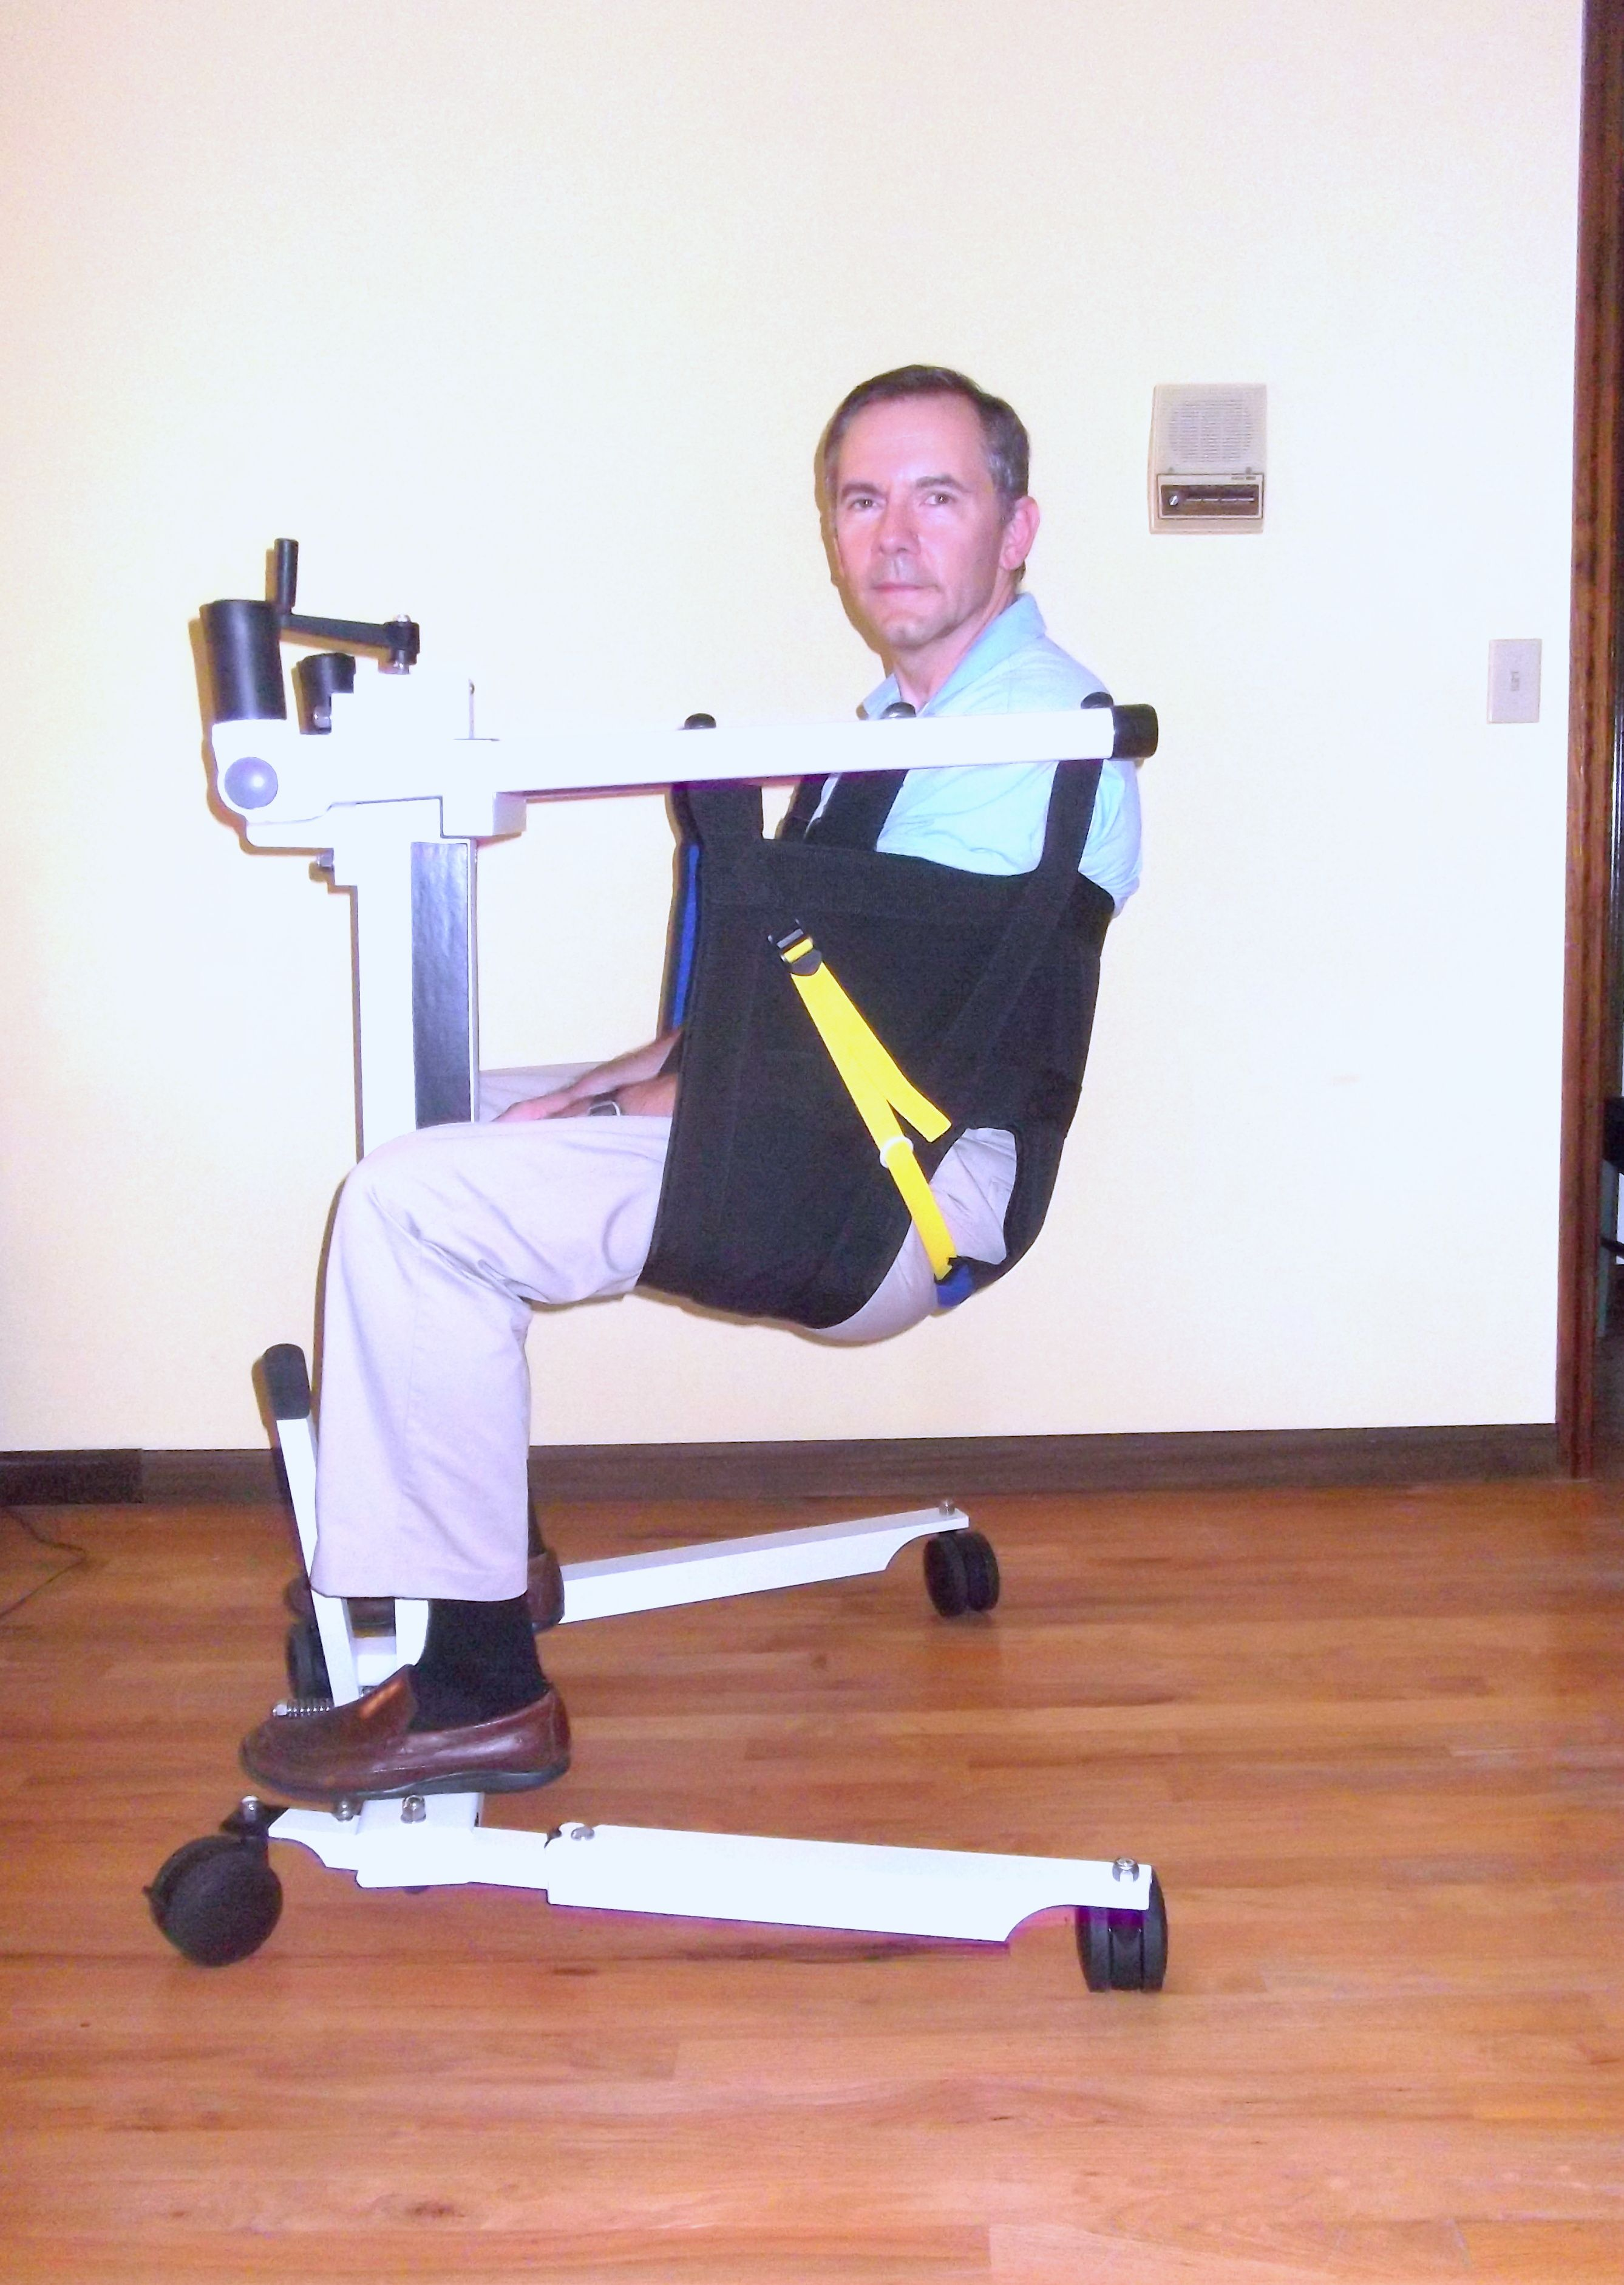 Lift For Disabled Person : Portable handicap lift from take along lifts projetos